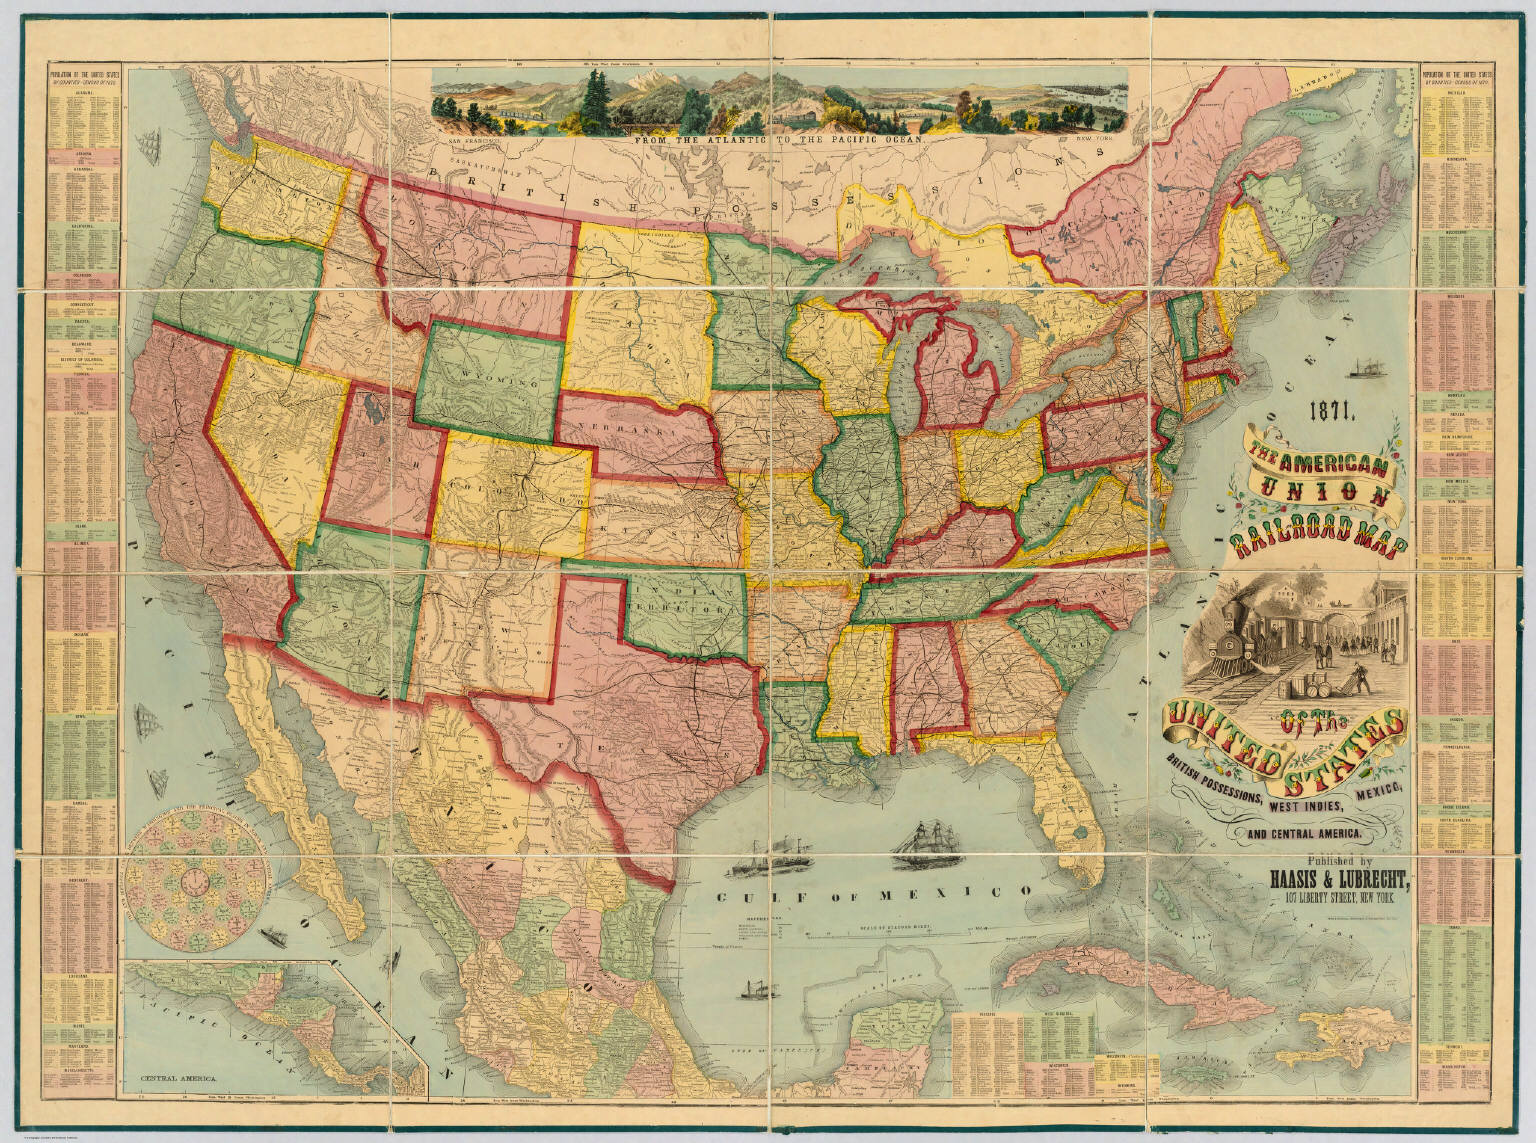 American Union Railroad Map Of The United States. - David Rumsey ...